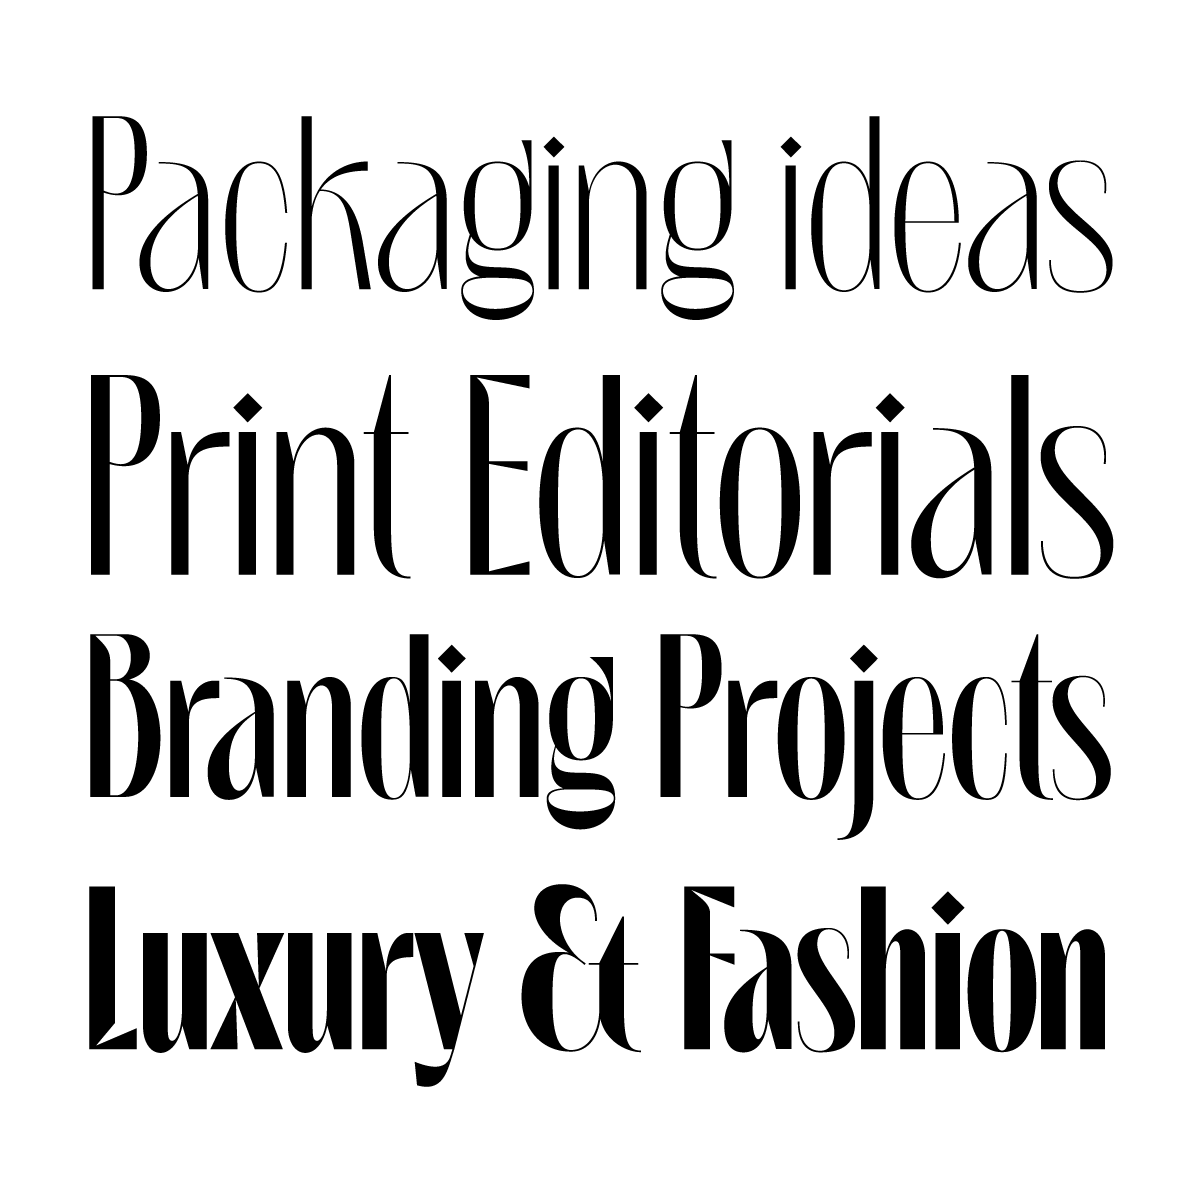 Loggia is a brand new packaging typeface by Andrei Robu for www.typeverything.com